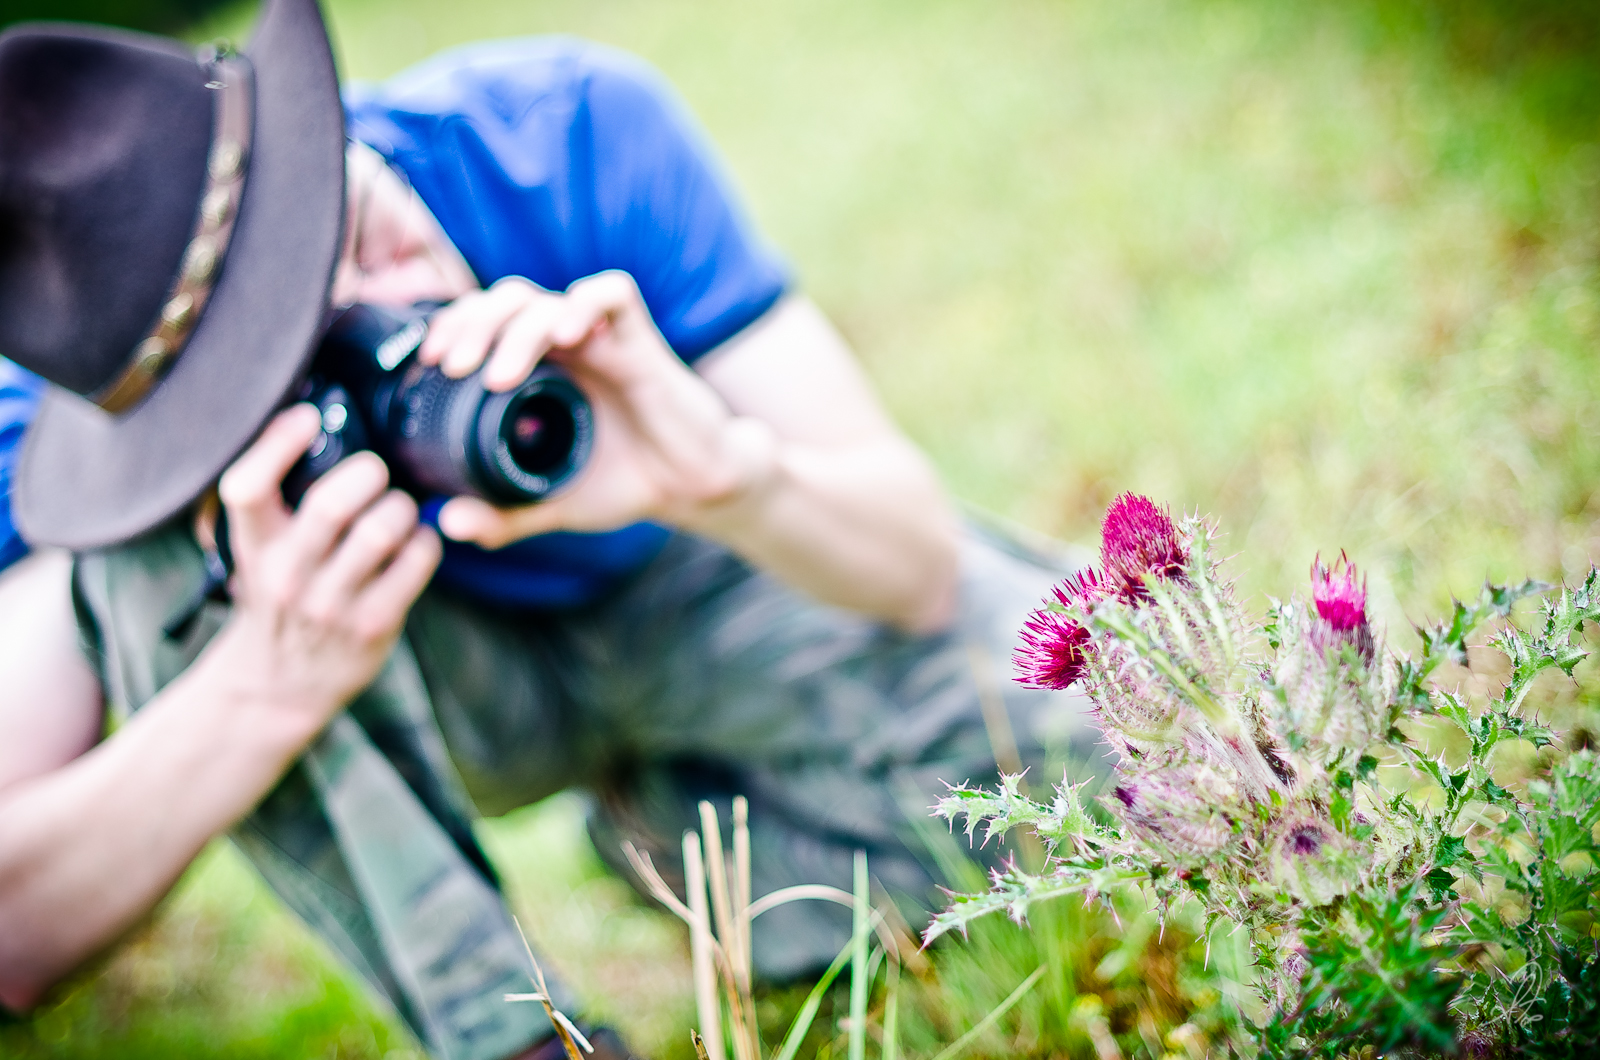 Nikon D3100 and Spring Thistle Weed